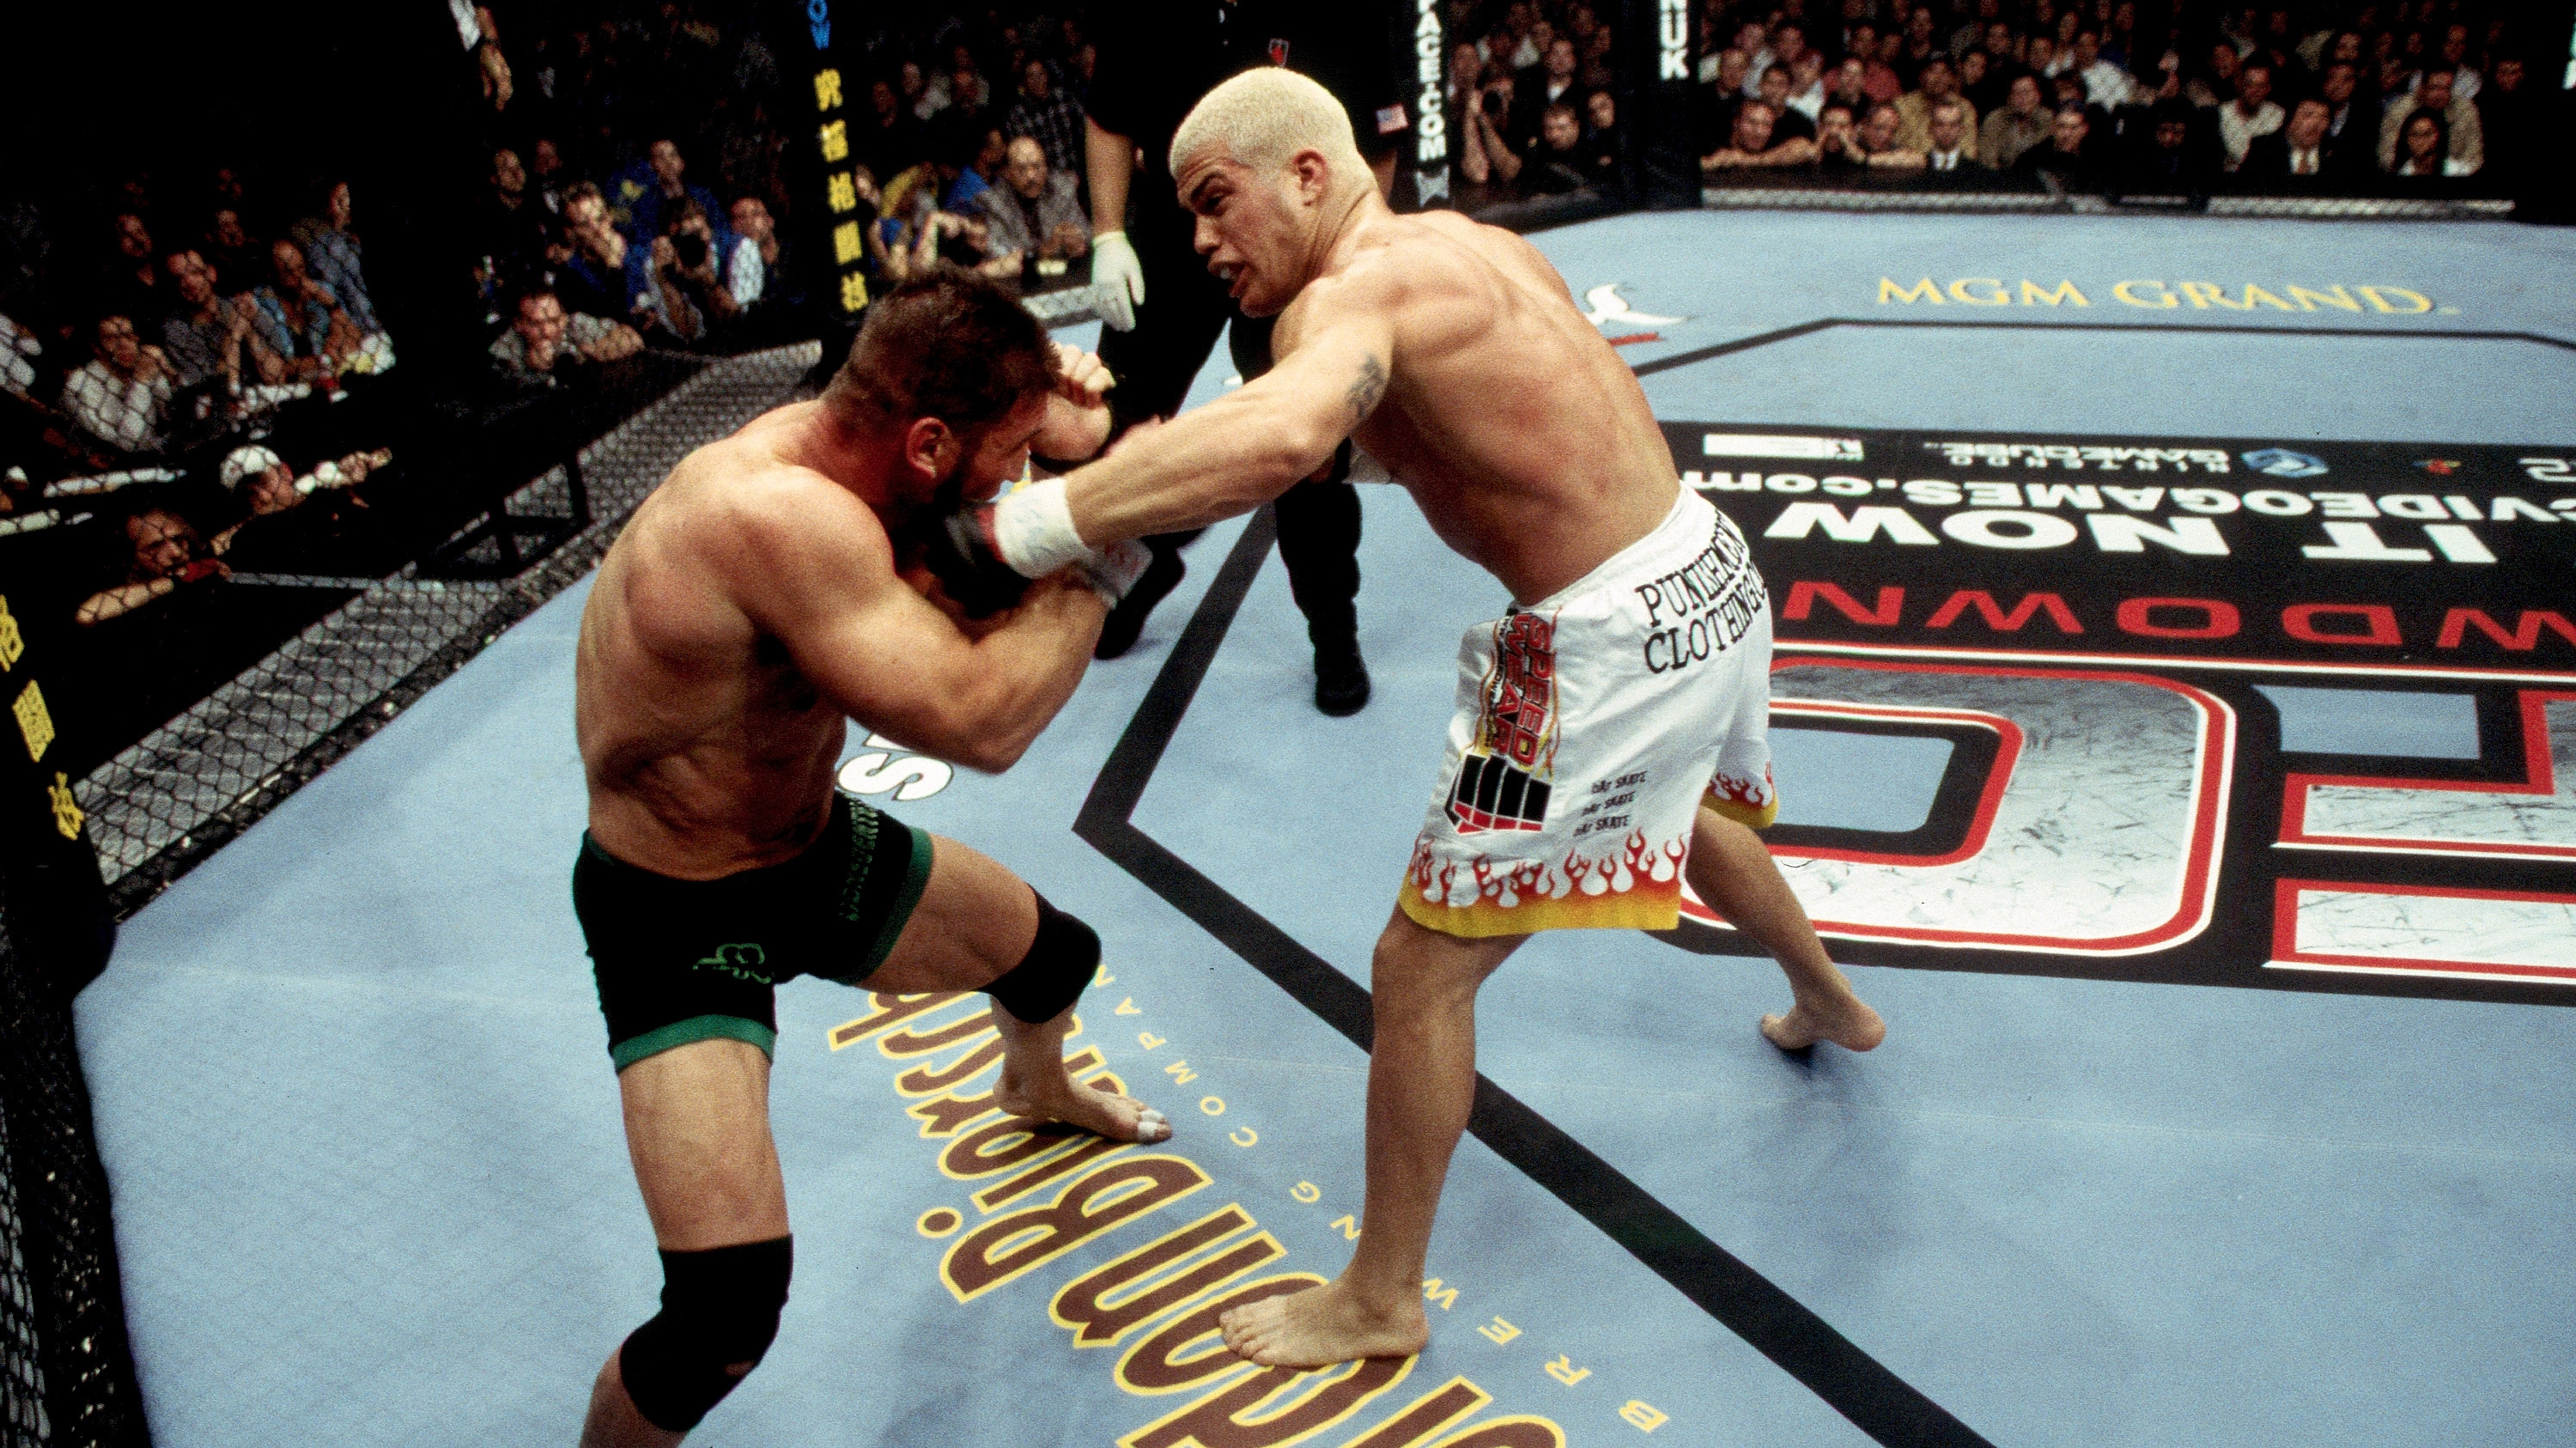 LAS VEGAS - NOVEMBER 22:  Tito Ortiz (white shorts) and <a href='../fighter/Ken-Shamrock'>Ken Shamrock</a> (black shorts) battle during <a href='../event/UFC-40-Vendetta'>UFC 40 </a>at the MGM Grand Garden Arena on November 22, 2002 in Las Vegas, Nevada. (Photo by Josh Hedges/Zuffa LLC)